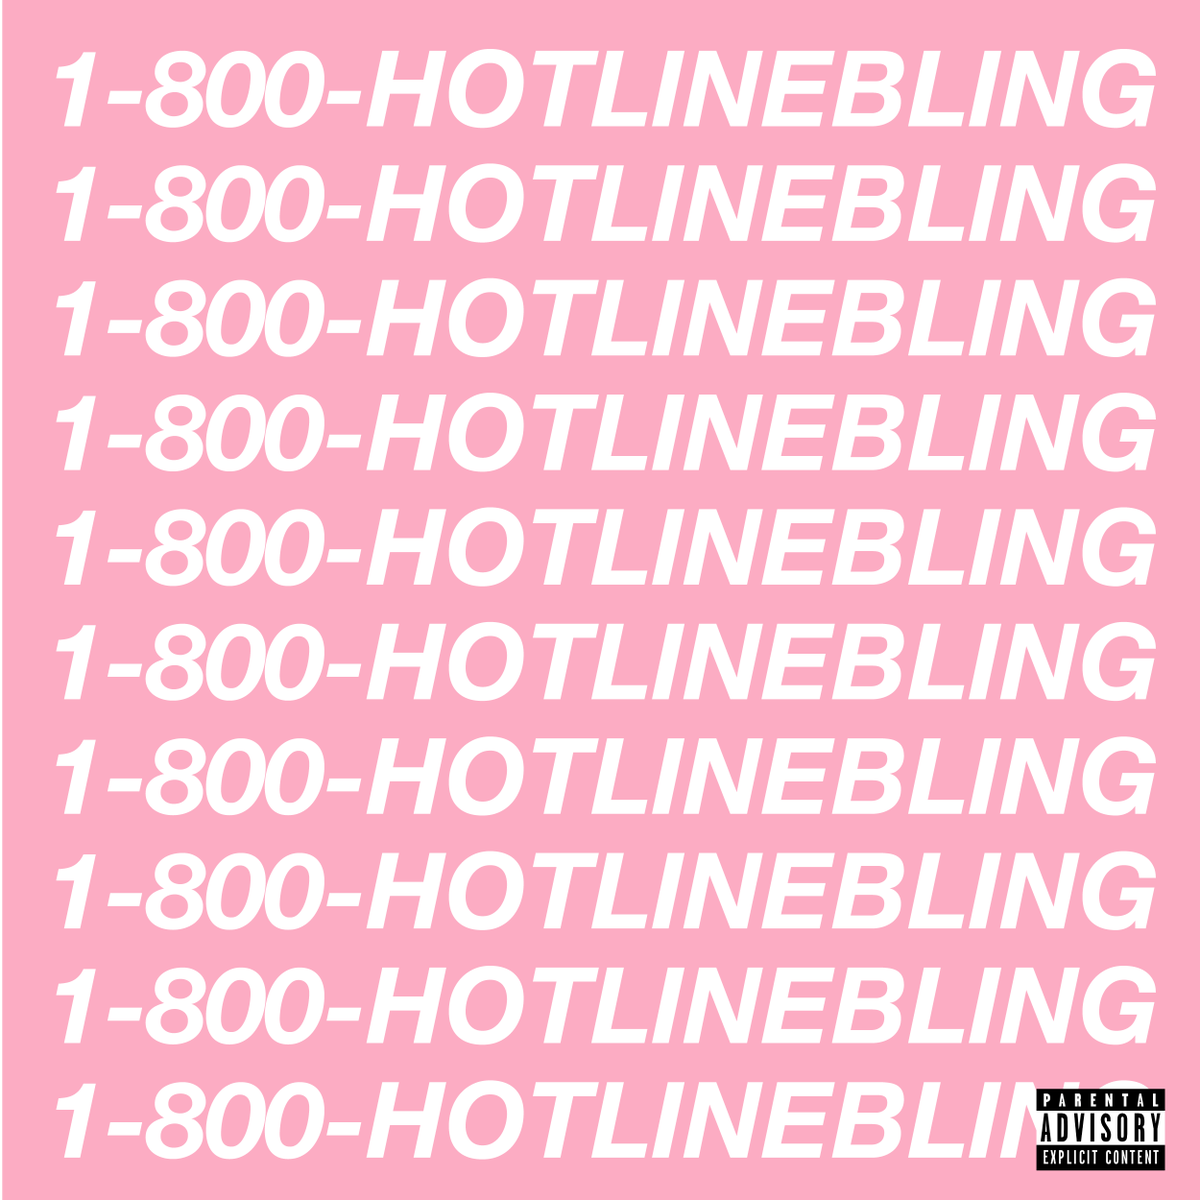 Drake ~ Hotline Bling now available on iTunes. https://t.co/zmGm4dNE5j http://t.co/JDFLs8vUxD